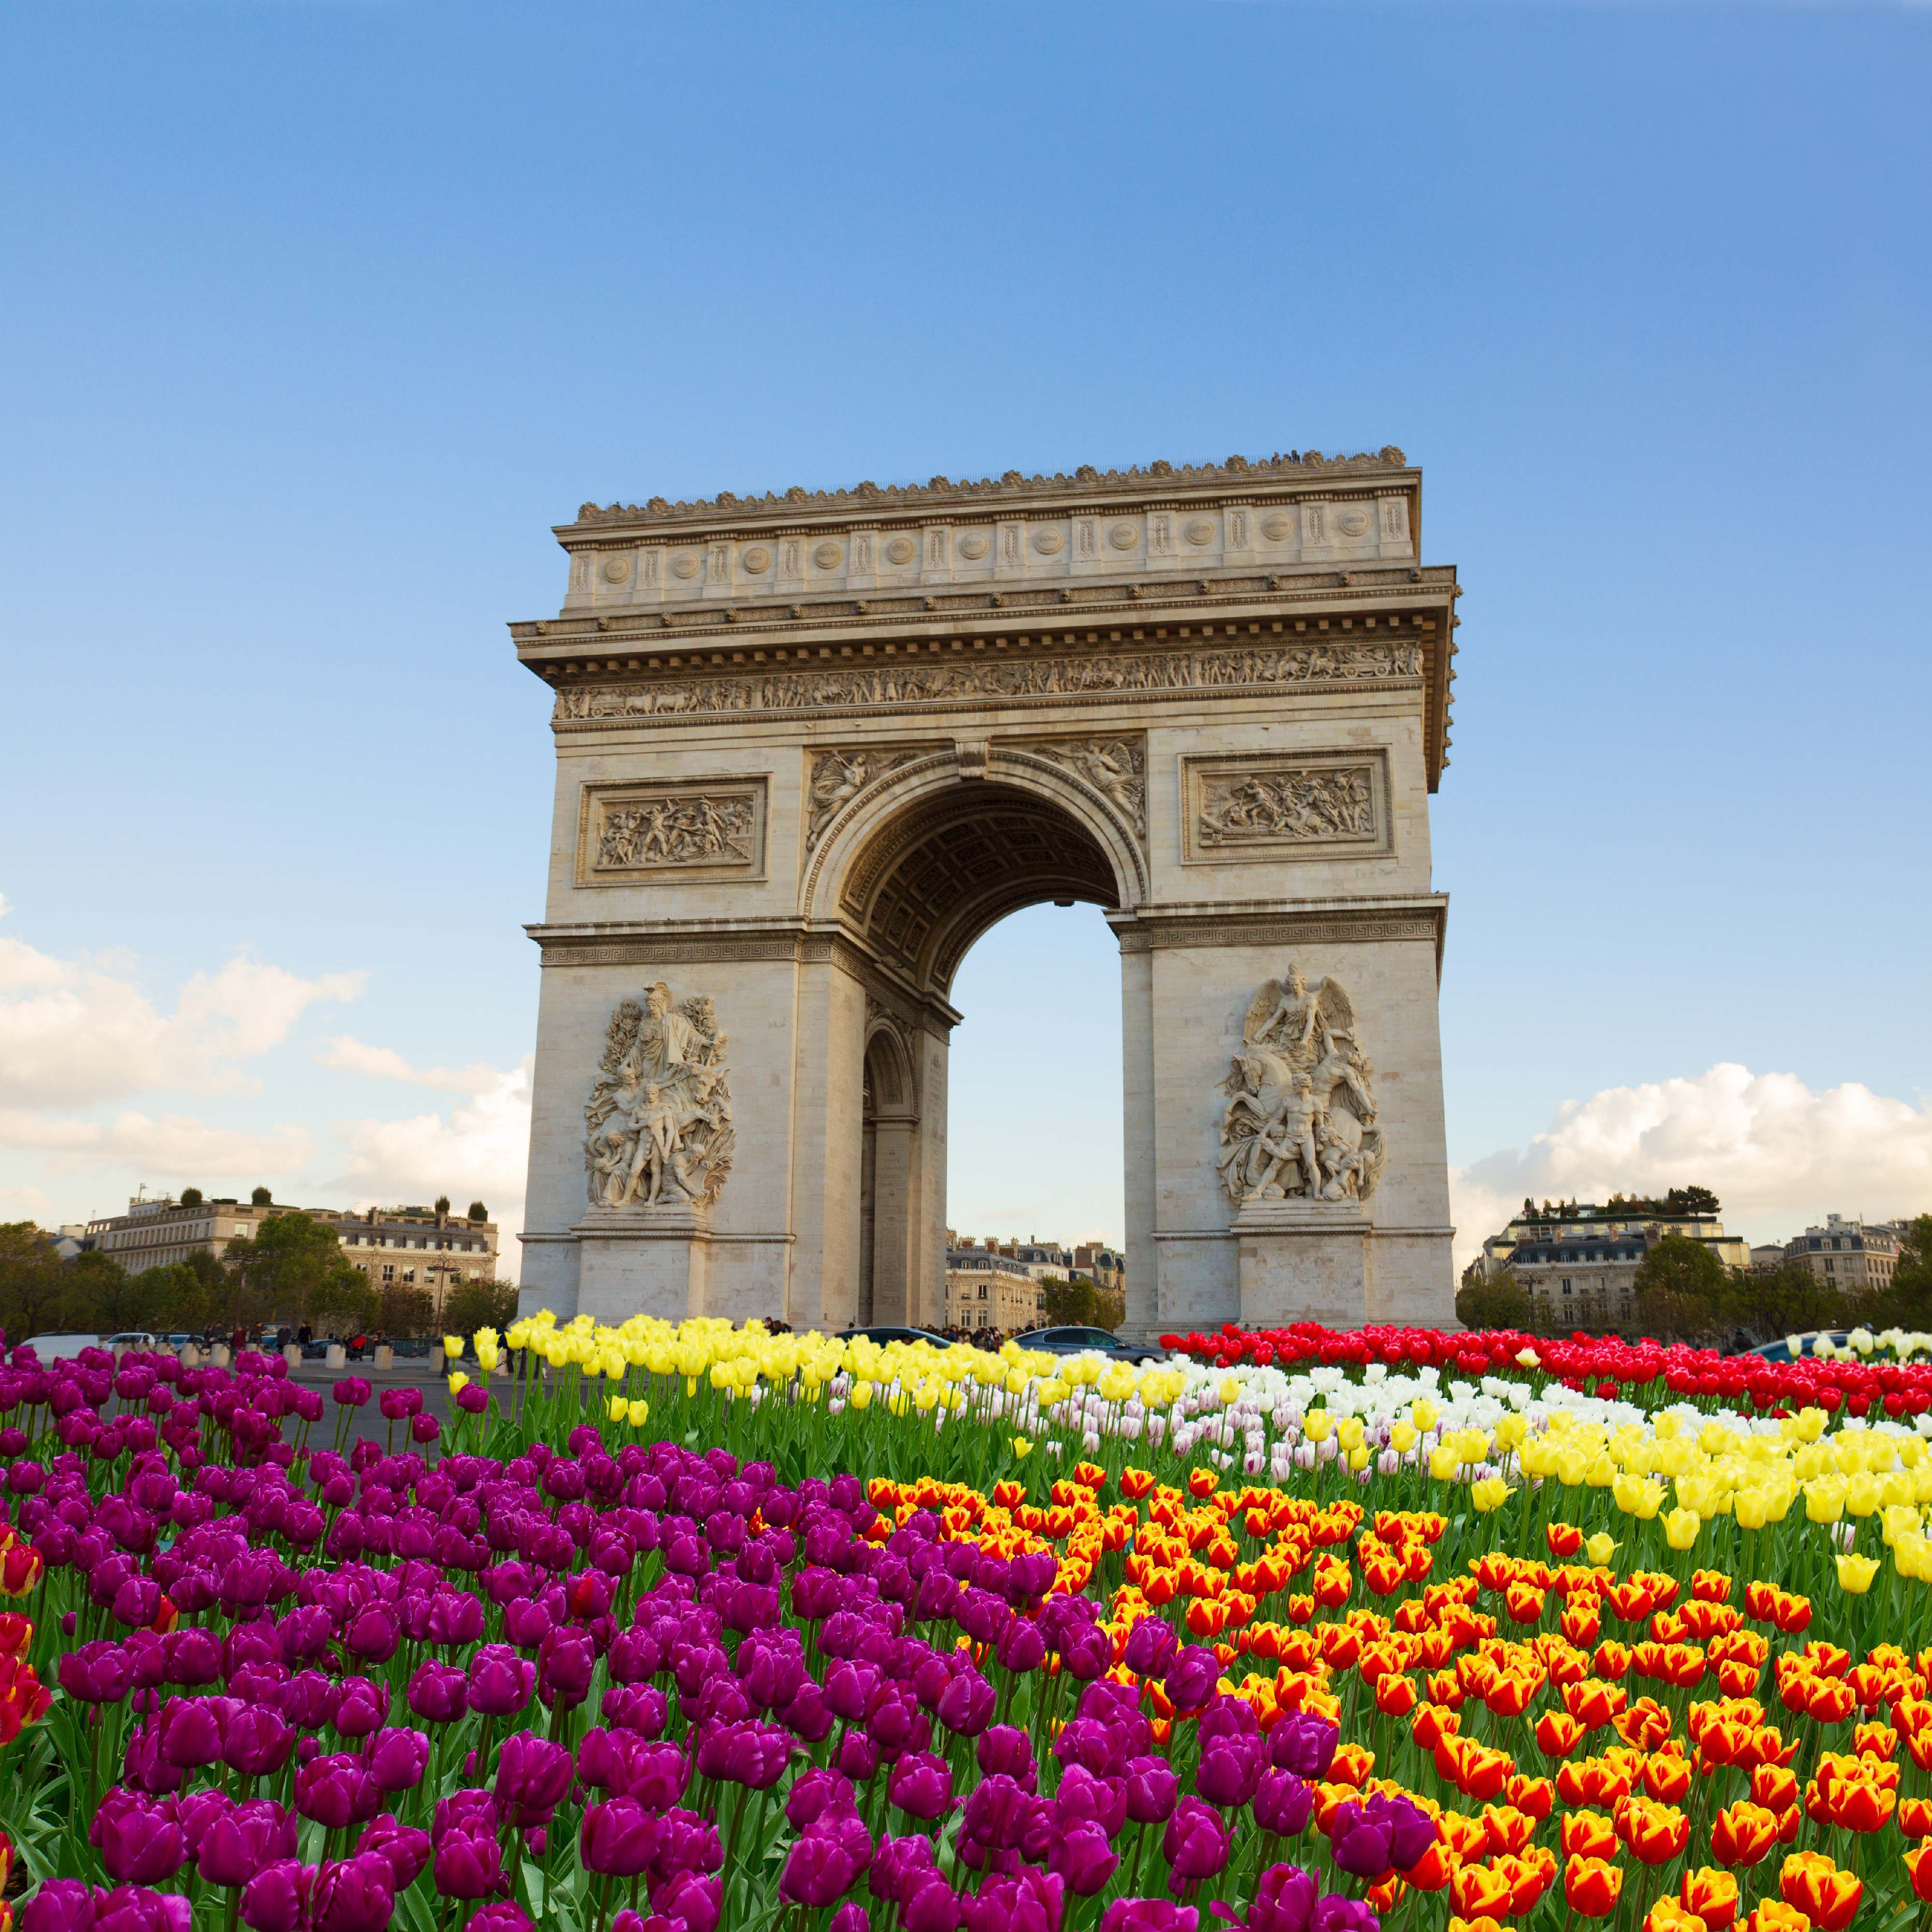 The Arc De Triomphe Is One Of The Most Famous Monuments In Paris It Stands In The Centre Of The Place Charles De Arc De Triomphe Arc De Triomphe Paris France